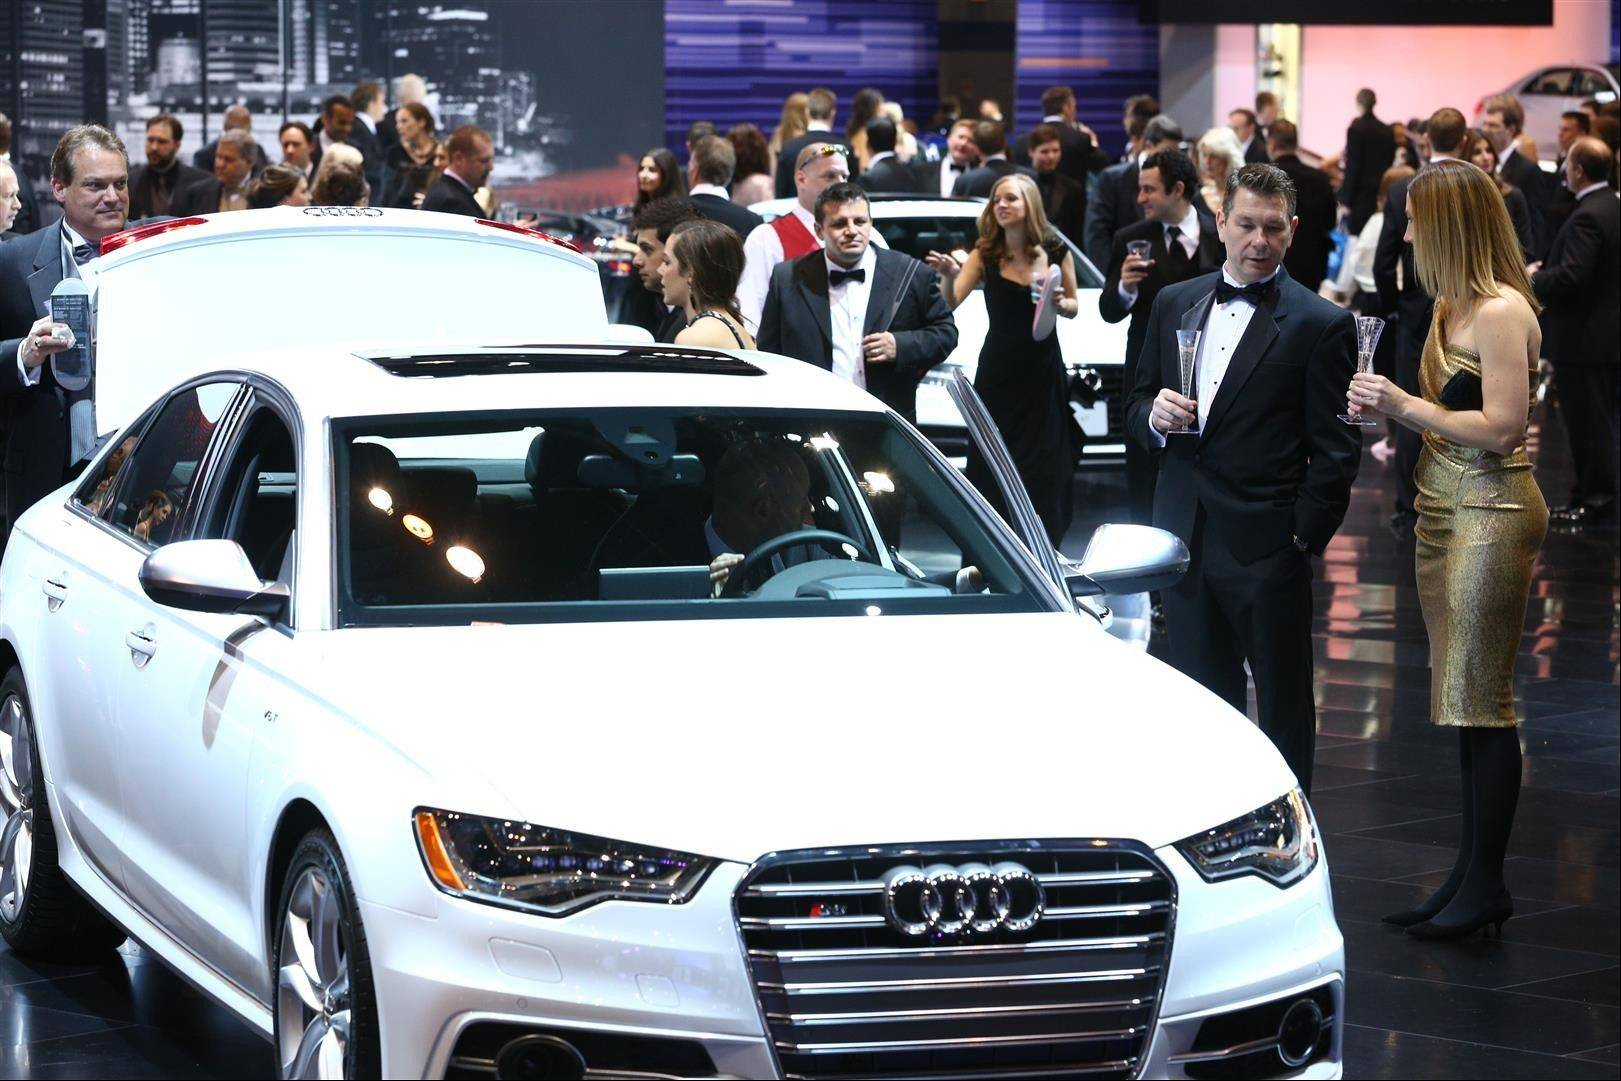 First Look for Charity gives guests access to vehicles on the show floor that is not always possible during the Chicago Auto Show's 10 public days.